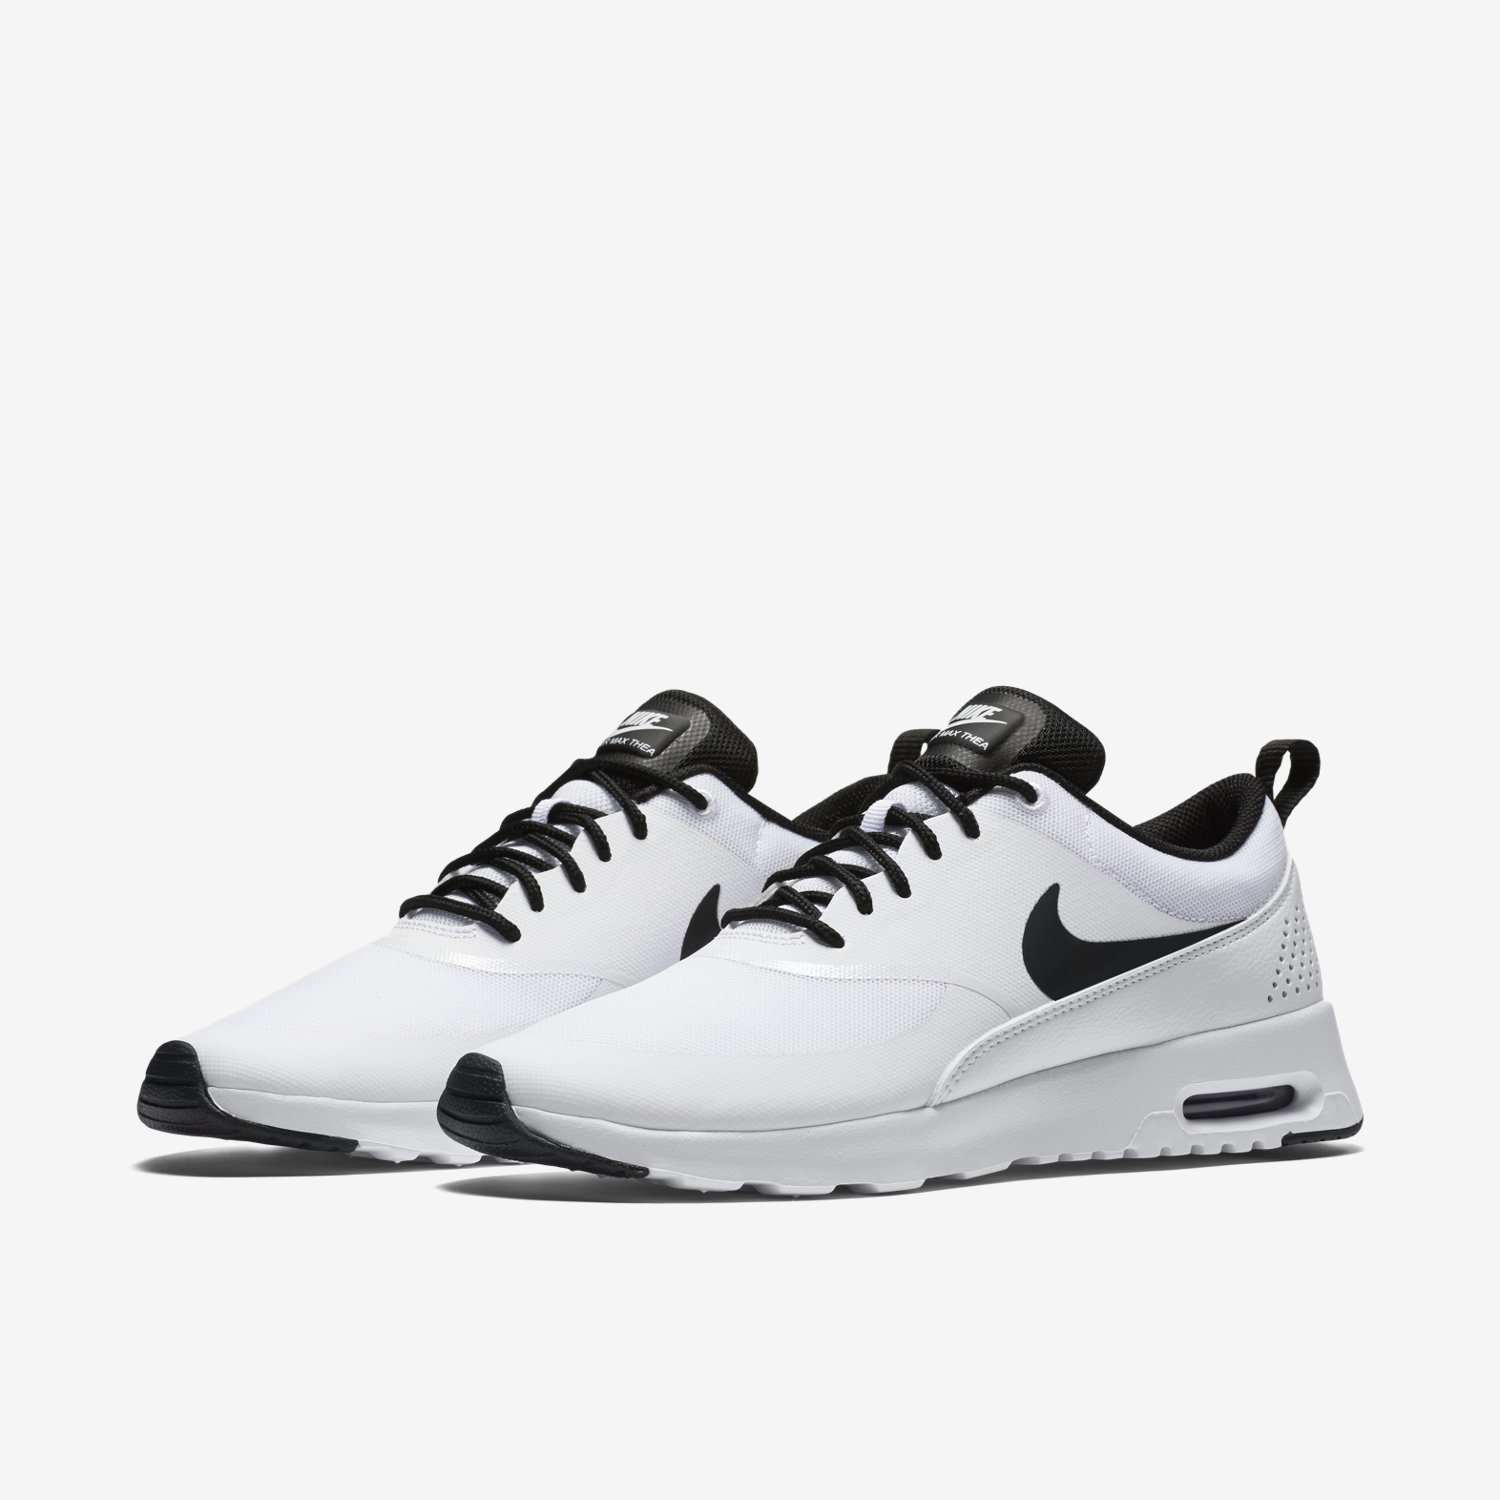 Nike Air Max Thea Print Discount Worldwide Friends Veraldarvinir